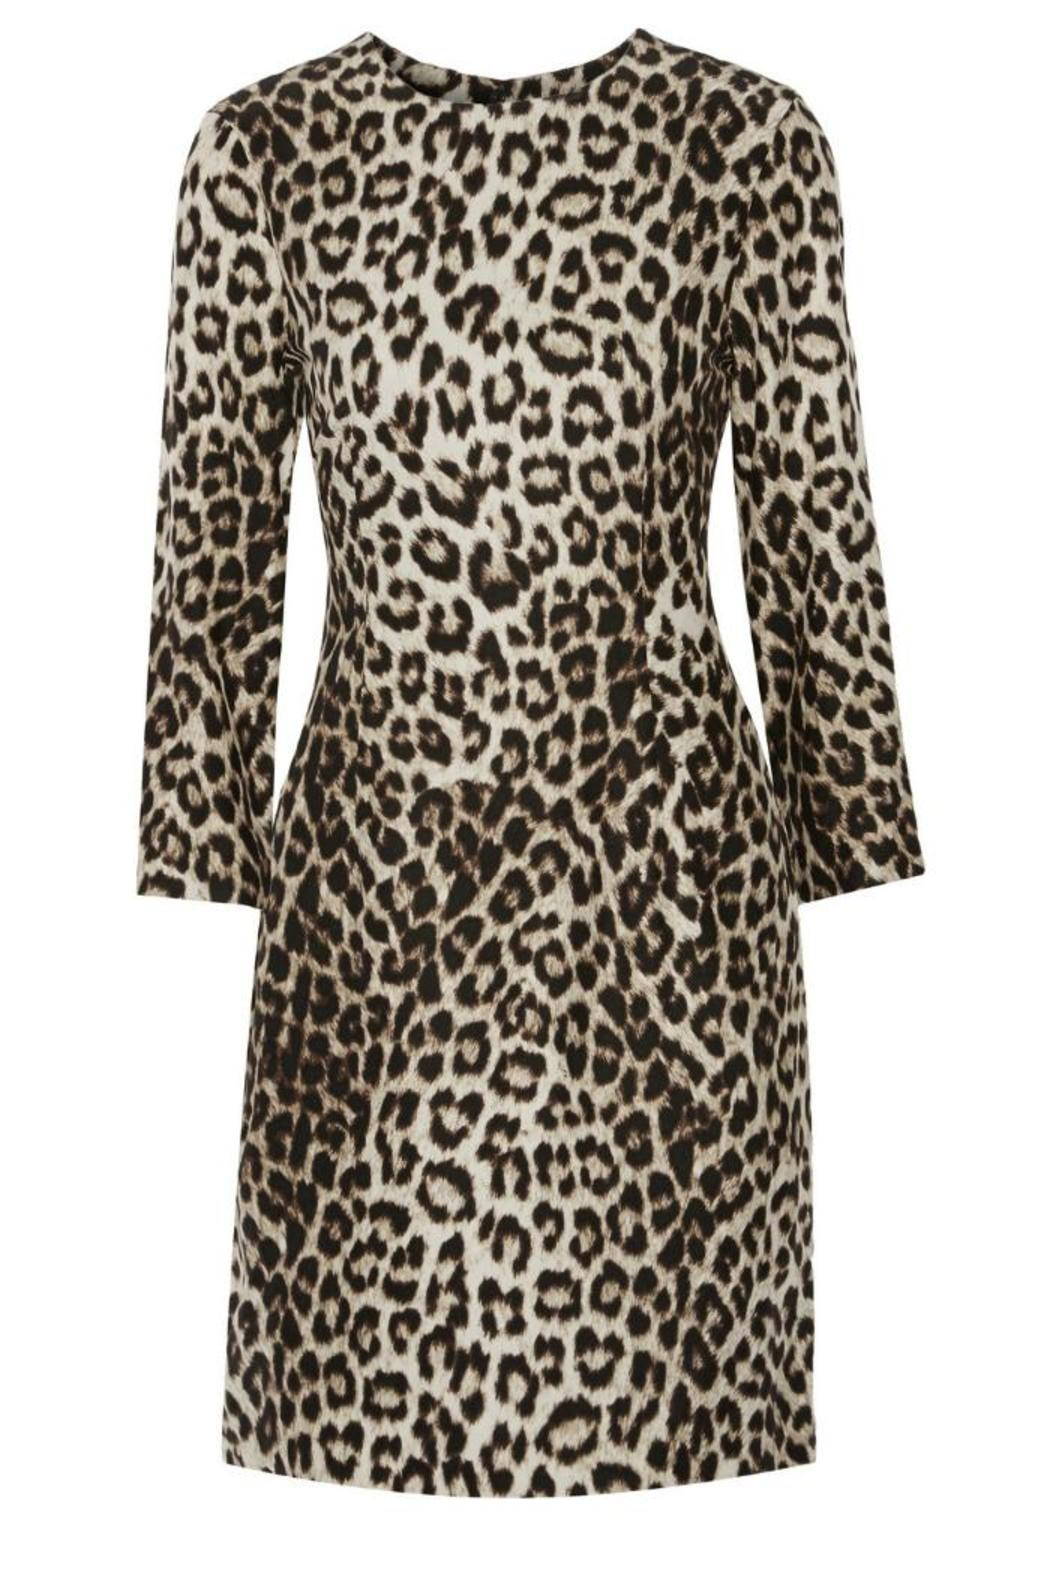 Rag & Bone Short Leopard Dress - Side Cropped Image